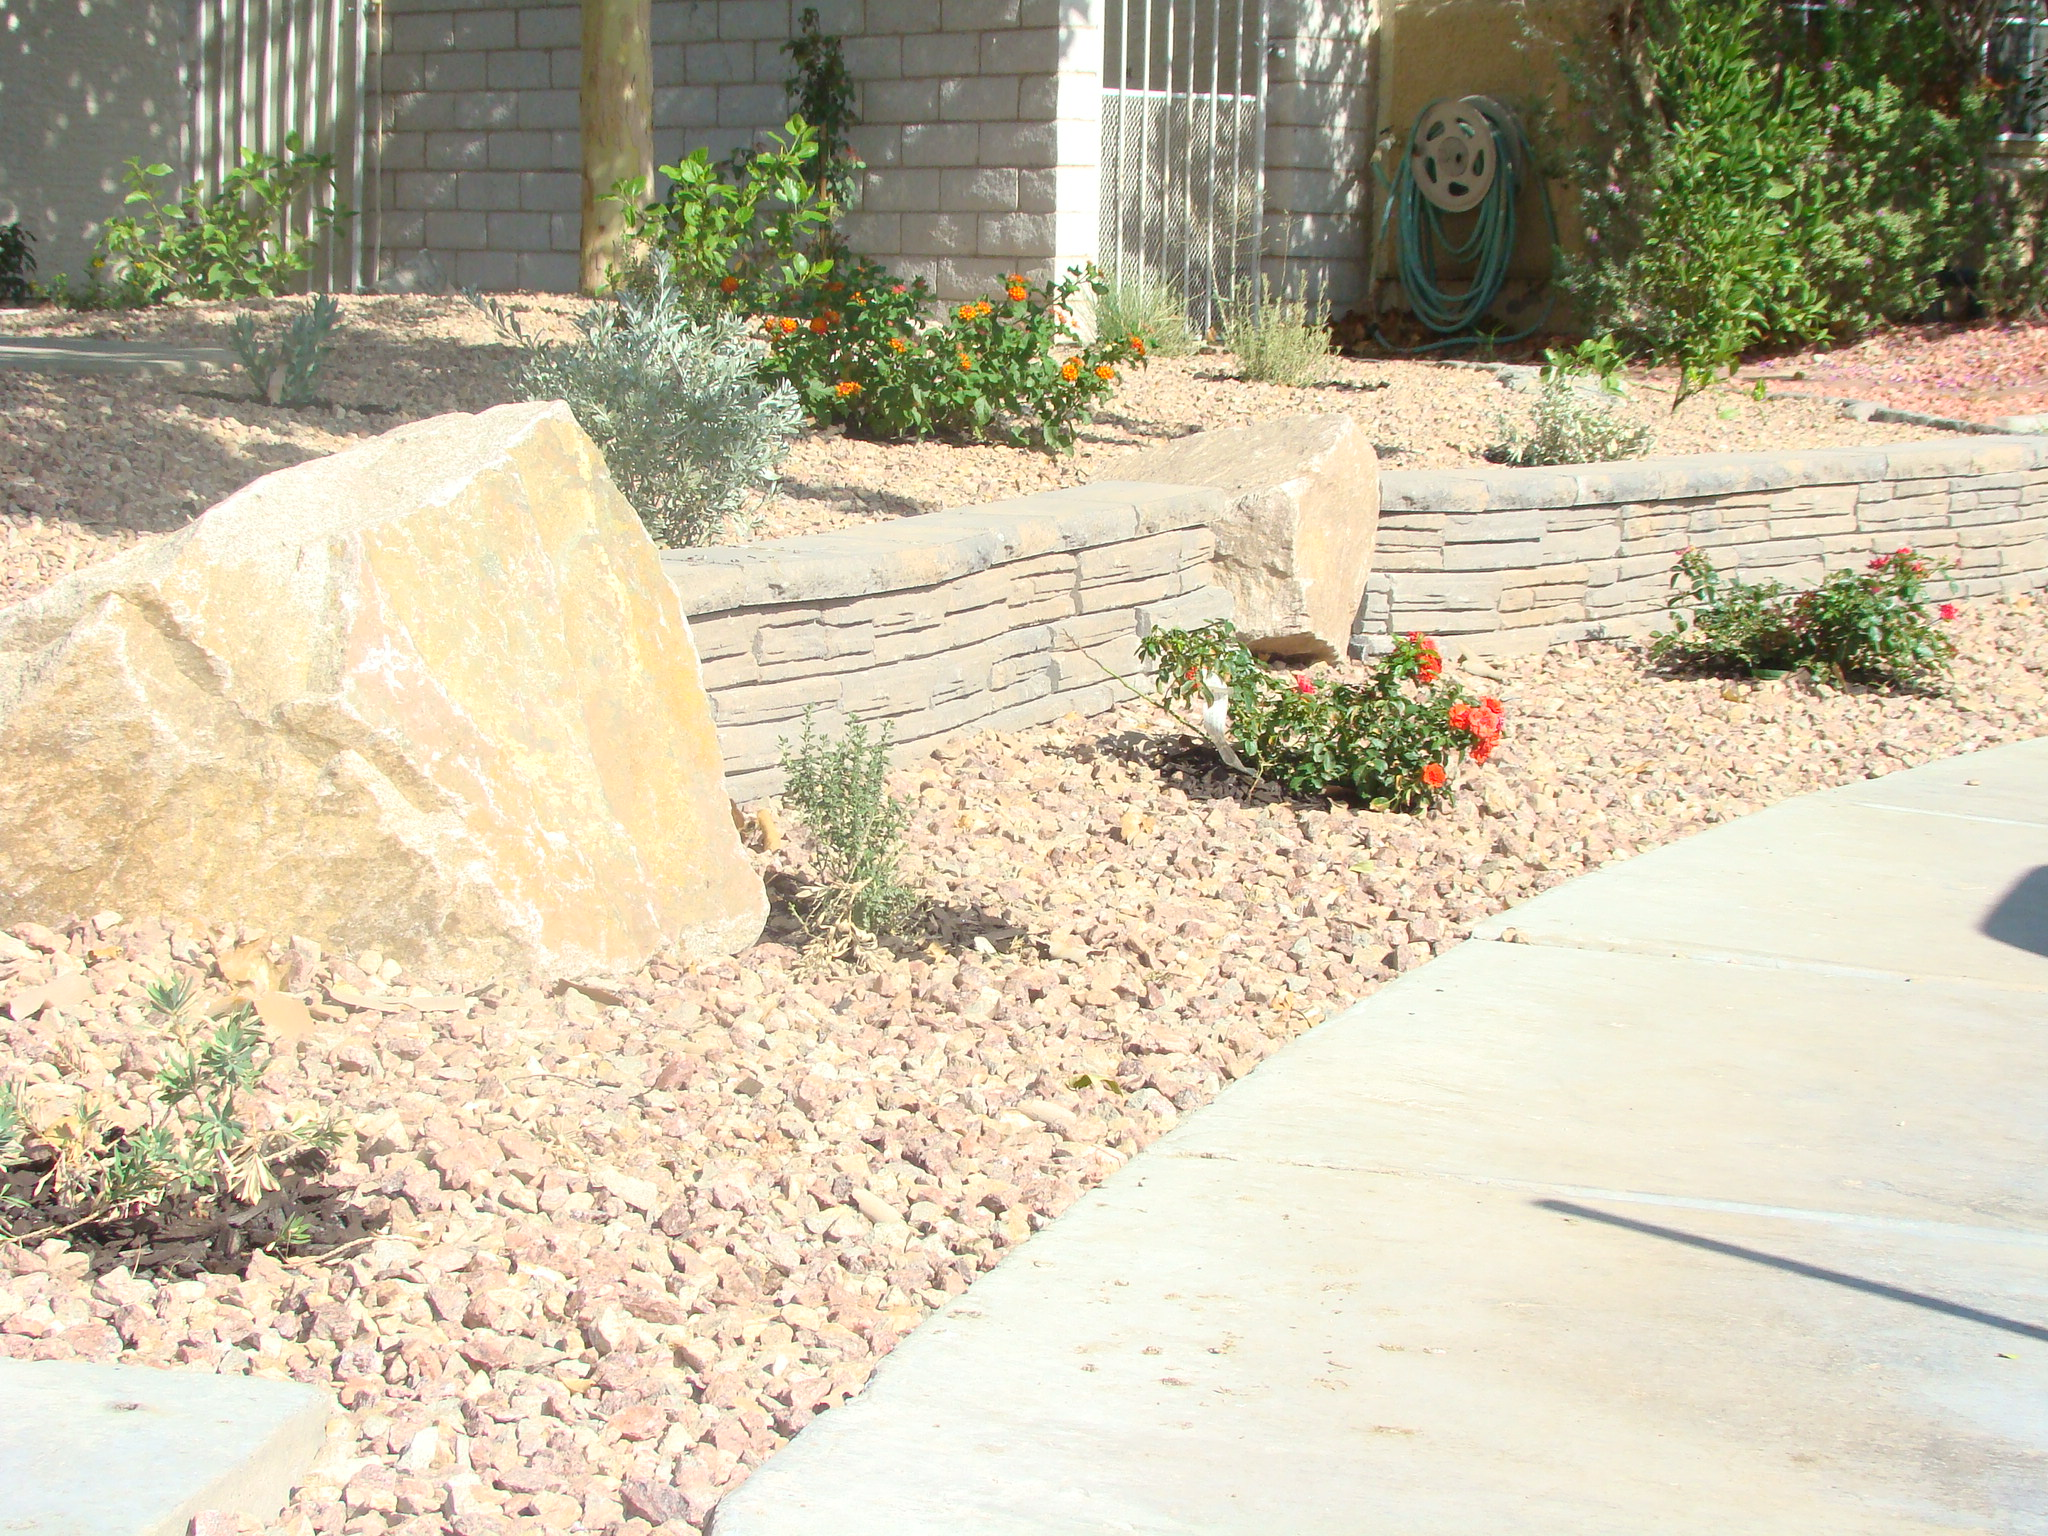 Desert Landscaping Complete with Decorative Rock, Stone Retaining Wall, Decorative Boulders and Low Maintenance Plants